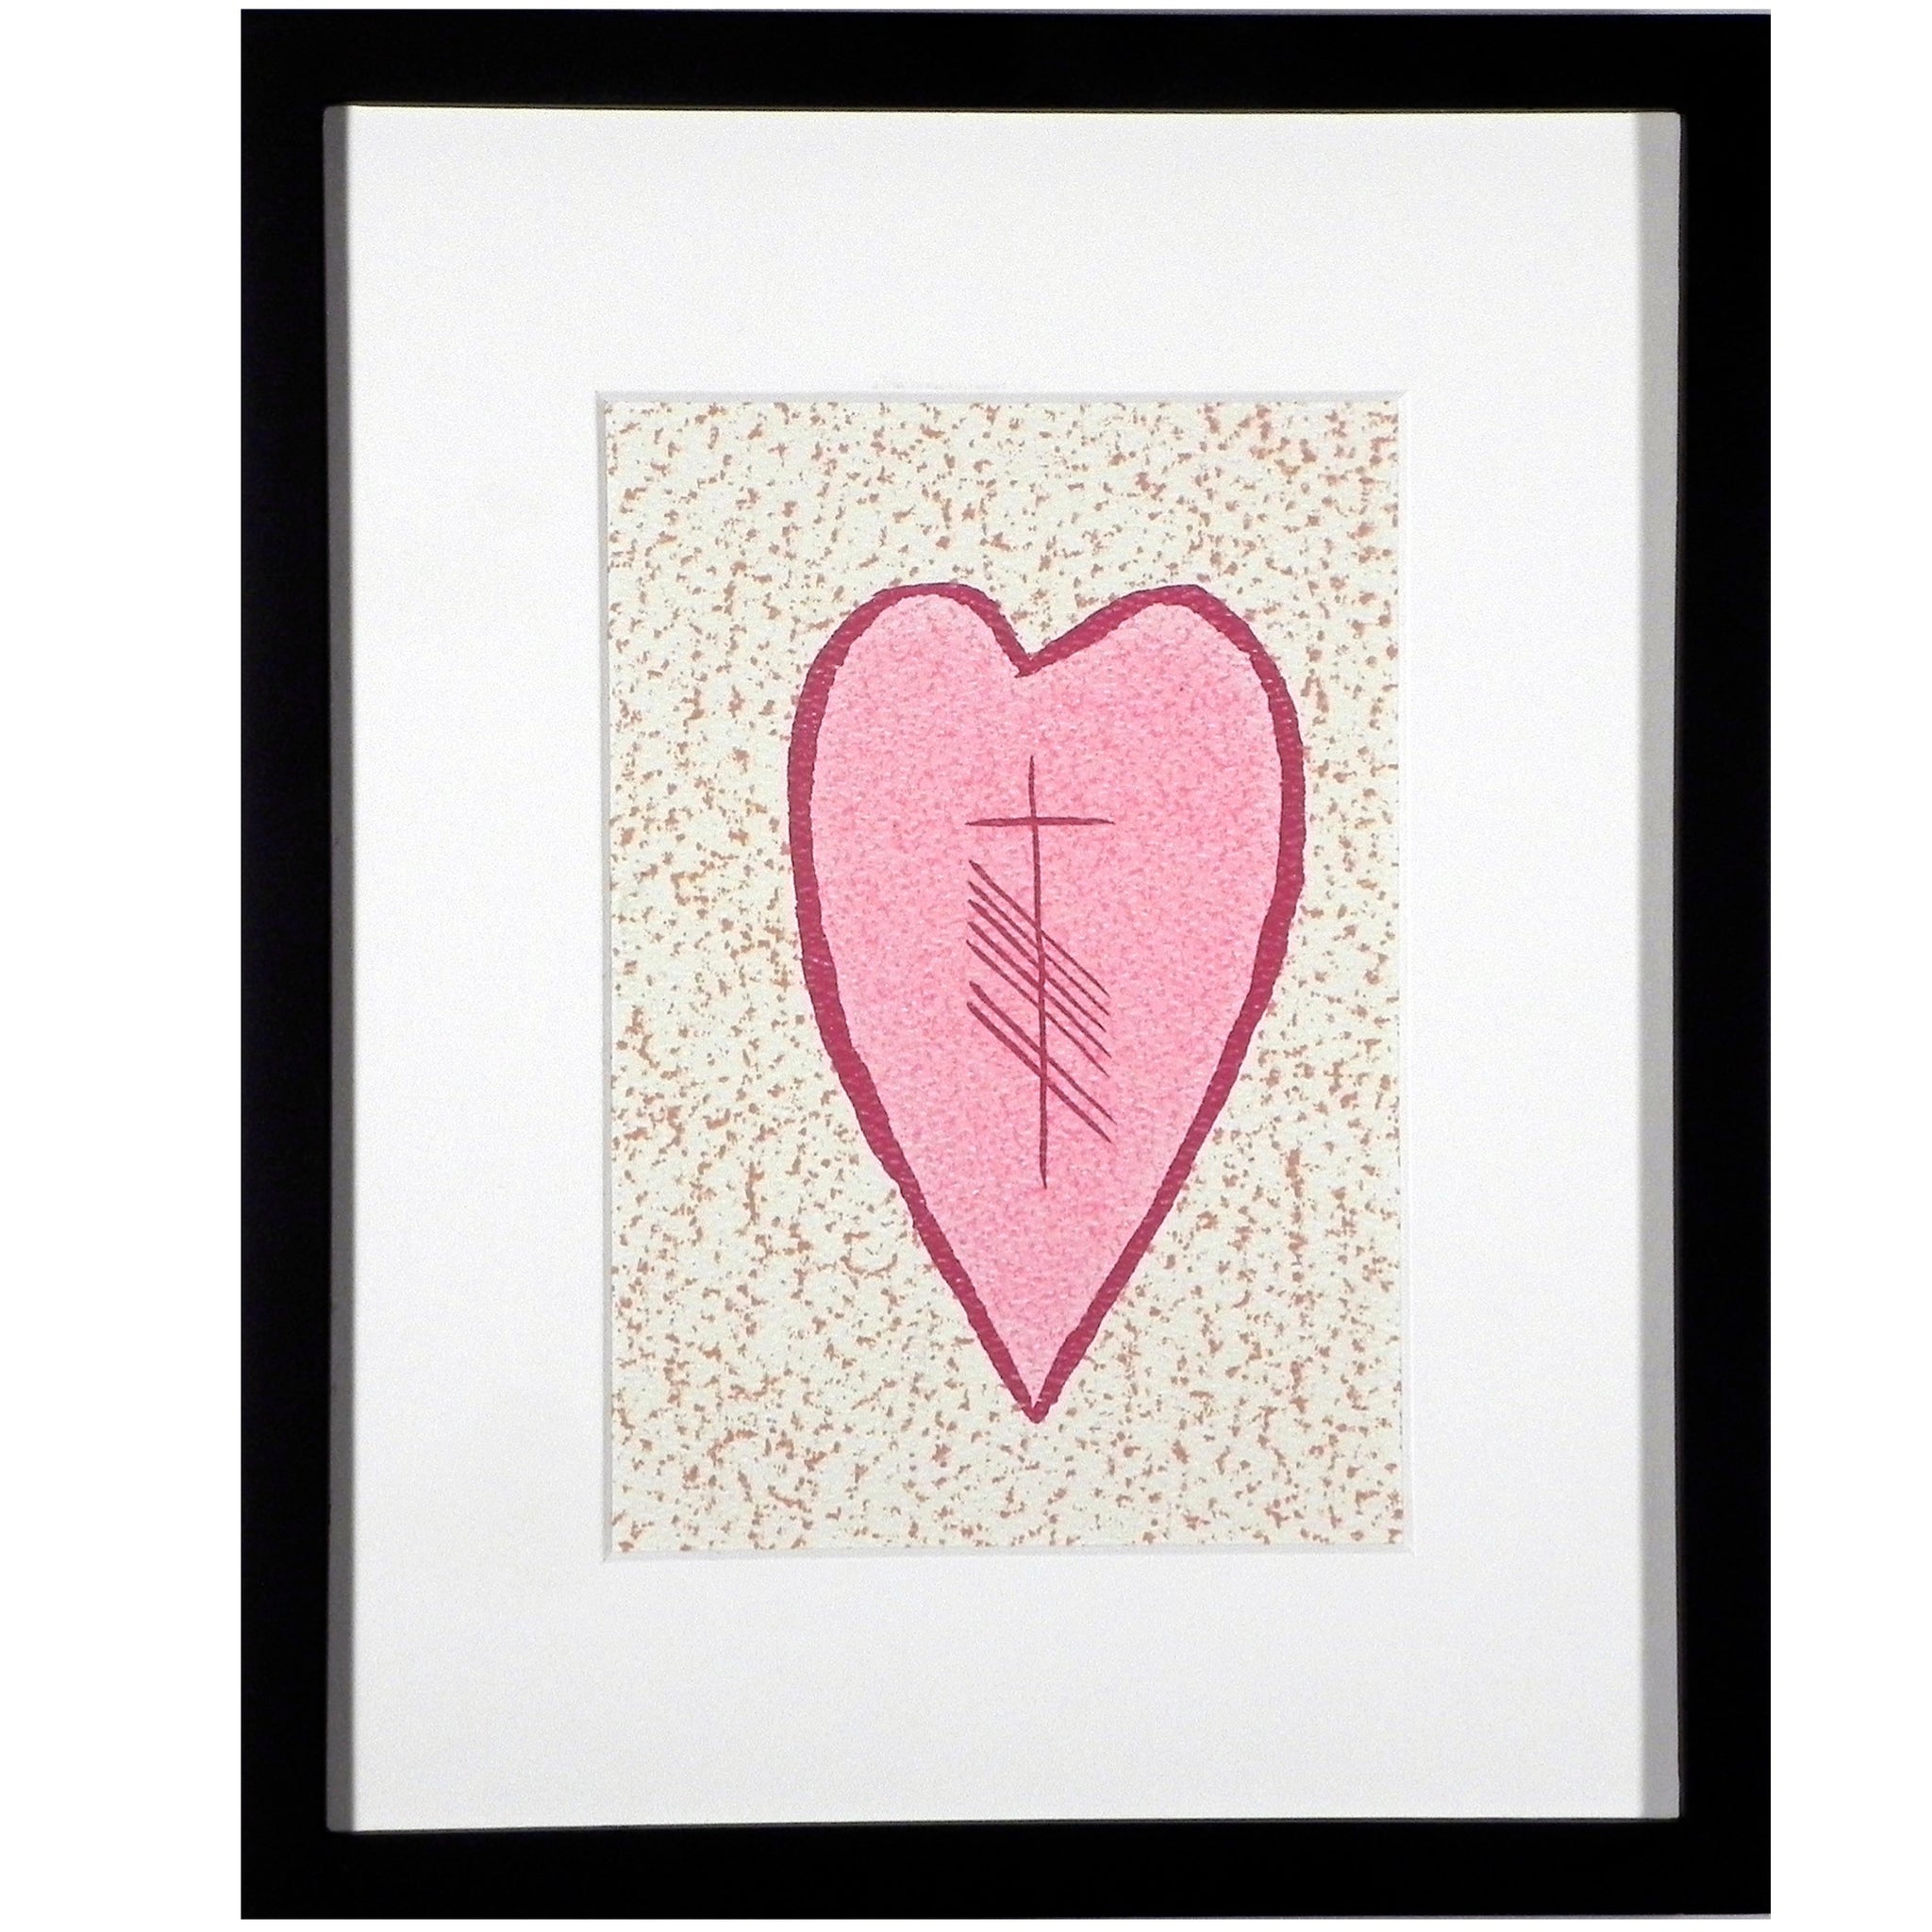 Ogham Art Love Gra Heart Print Celtic Gift